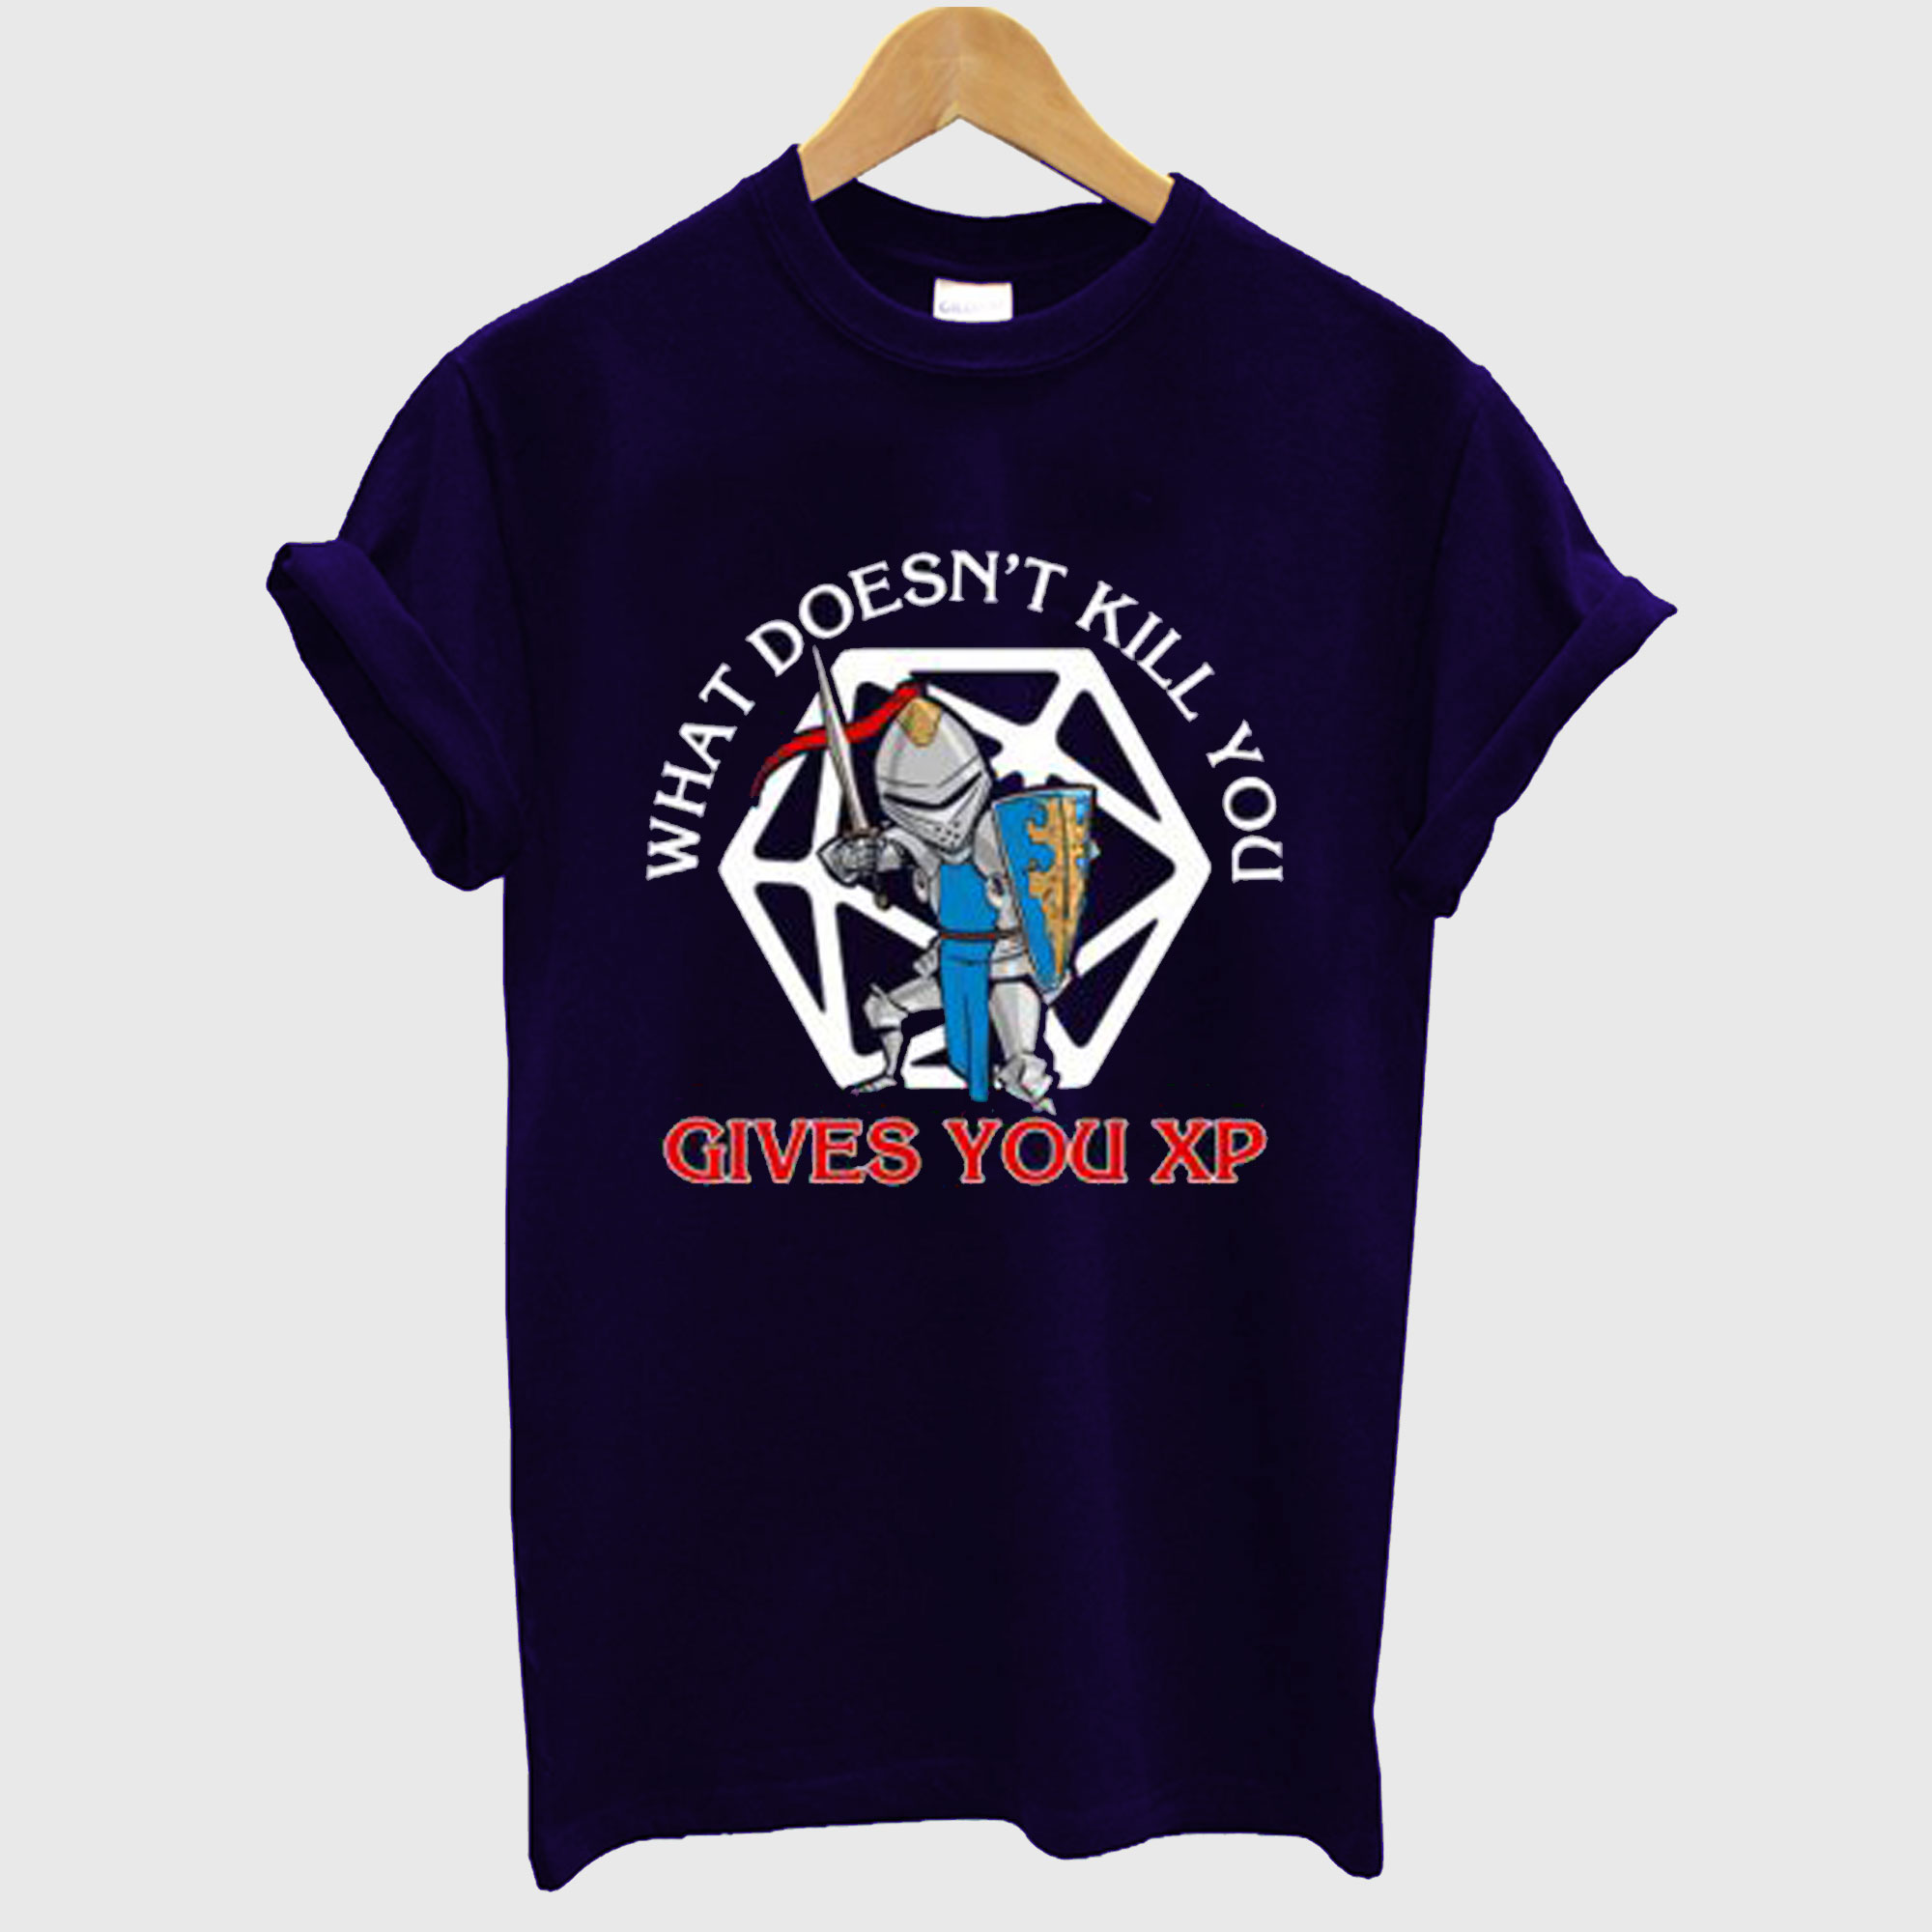 What Doesnt Kill You Gives You Xp T-Shirt